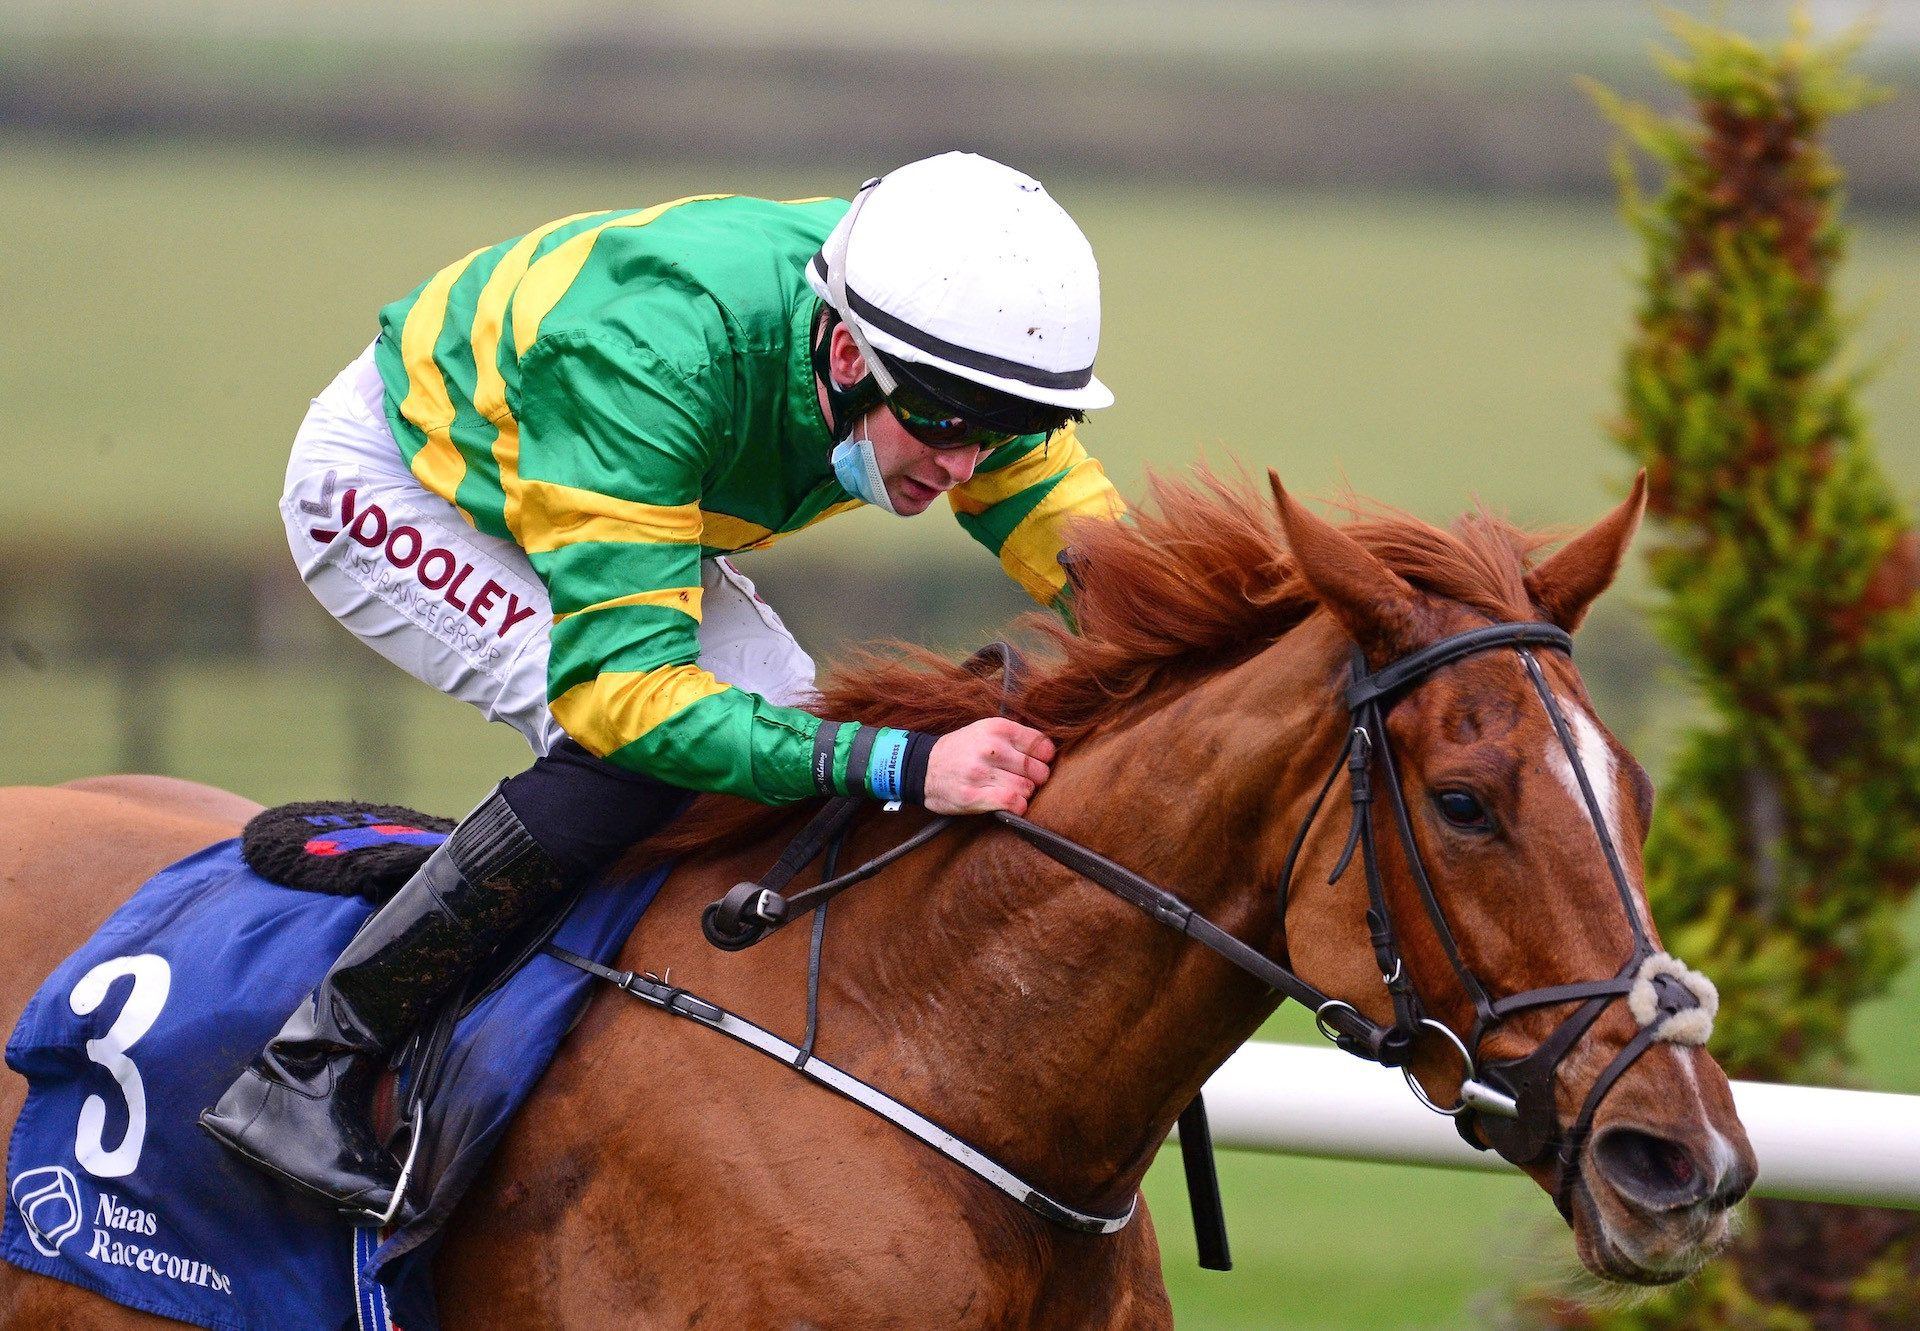 Dylanmouthhaydock